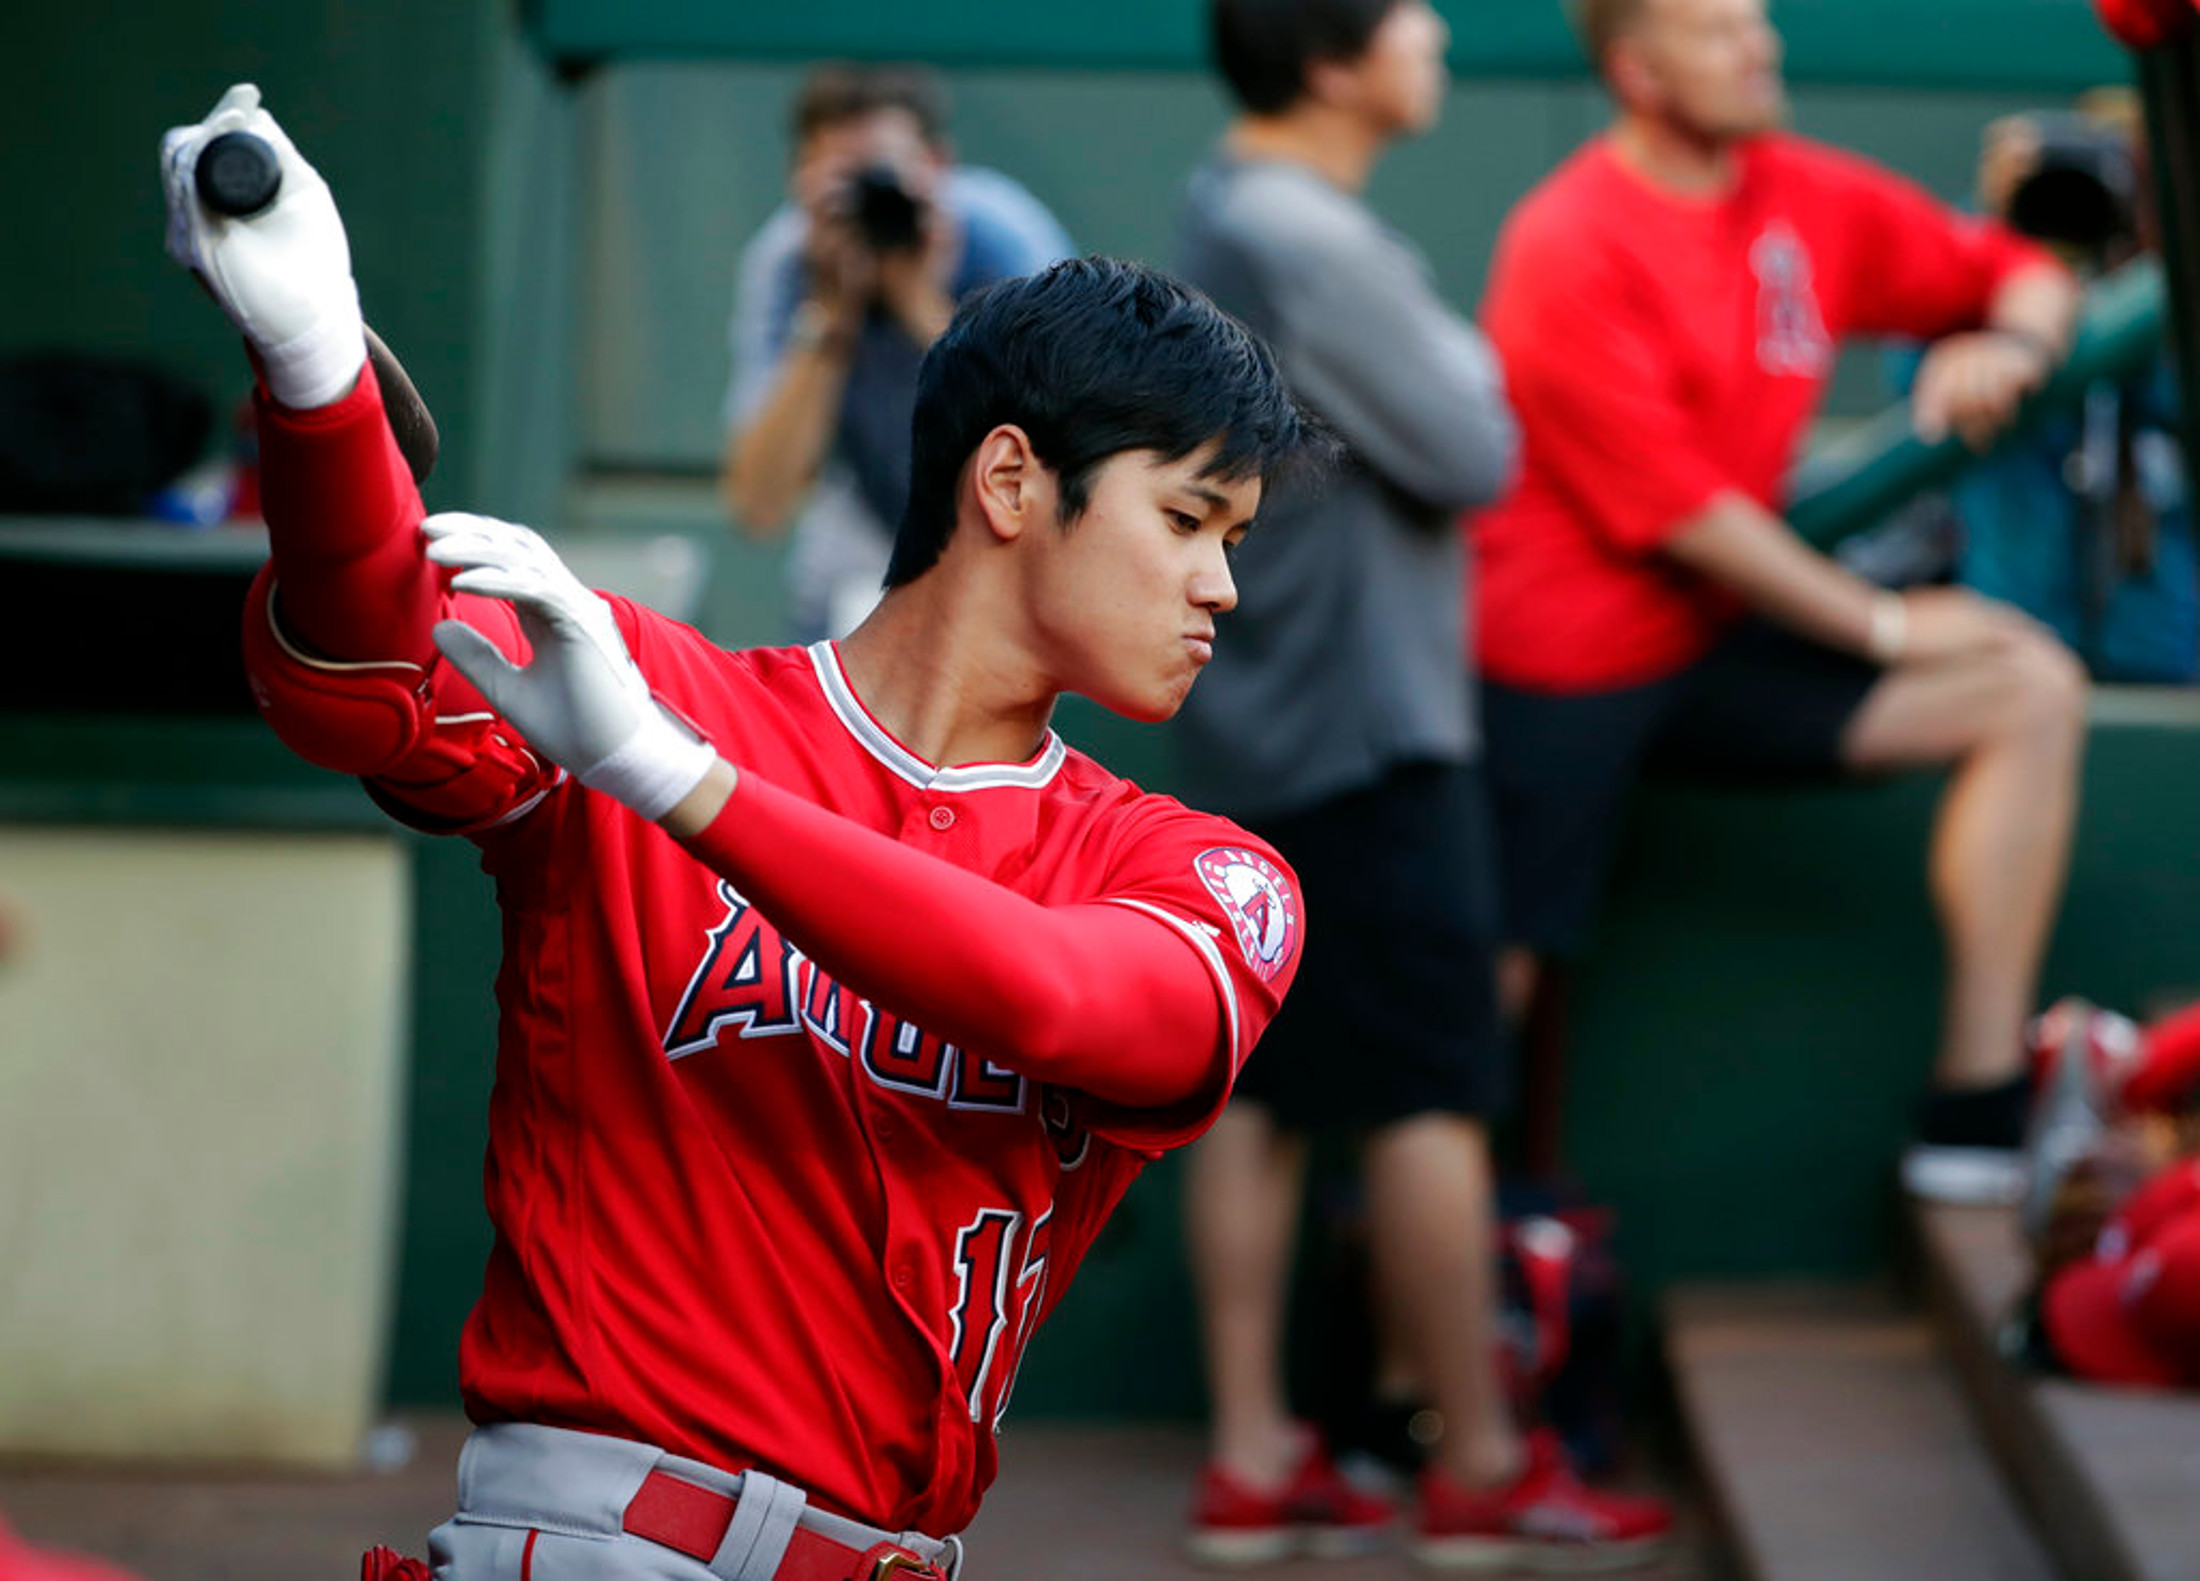 FILE - In this April 11, 2018, file photo, Los Angeles Angels' Shohei Ohtani takes a practice swing in the dugout in the first inning of a baseball game against the Texas Rangers in Arlington, Texas. Ohtani eagerly bounces into the cage when it's his turn in batting practice _ and then puts on an impressive show. The rookie two-way sensation is always ready to go, whether hitting or pitching for the Angels. (AP Photo/Tony Gutierrez, File)